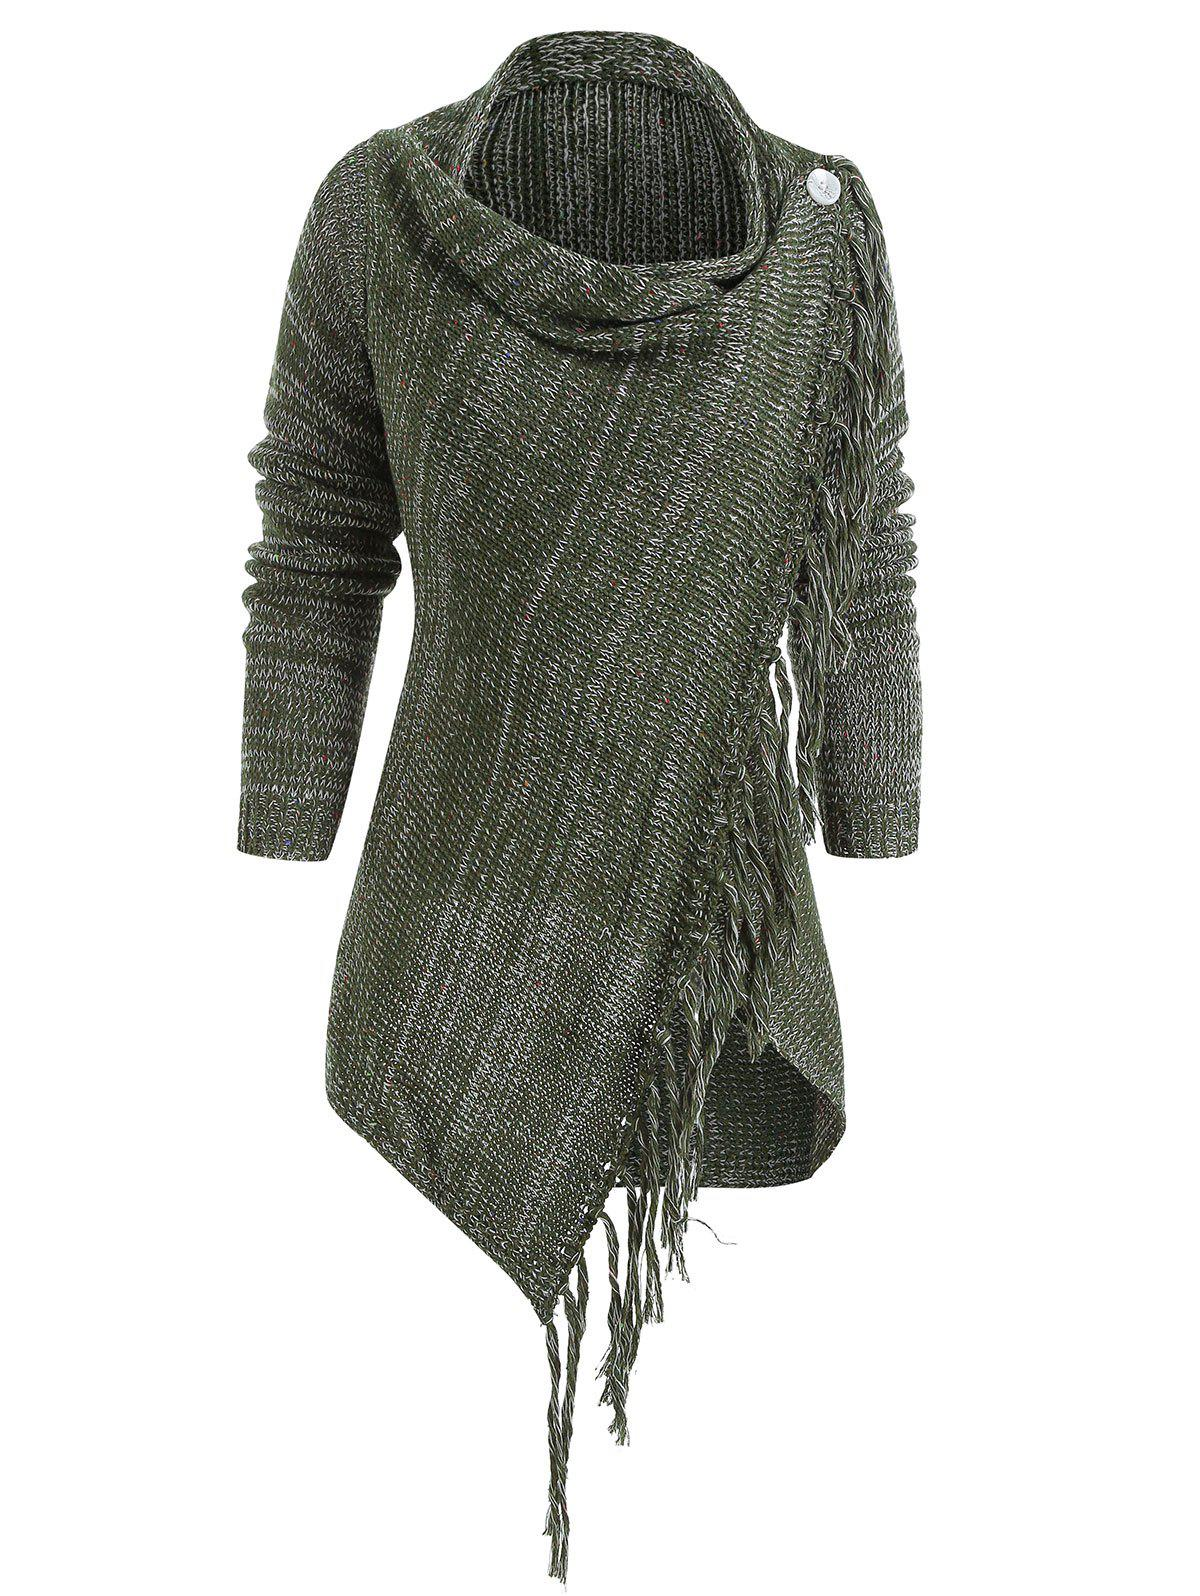 New Asymmetrical Fringed Hem Cardigan